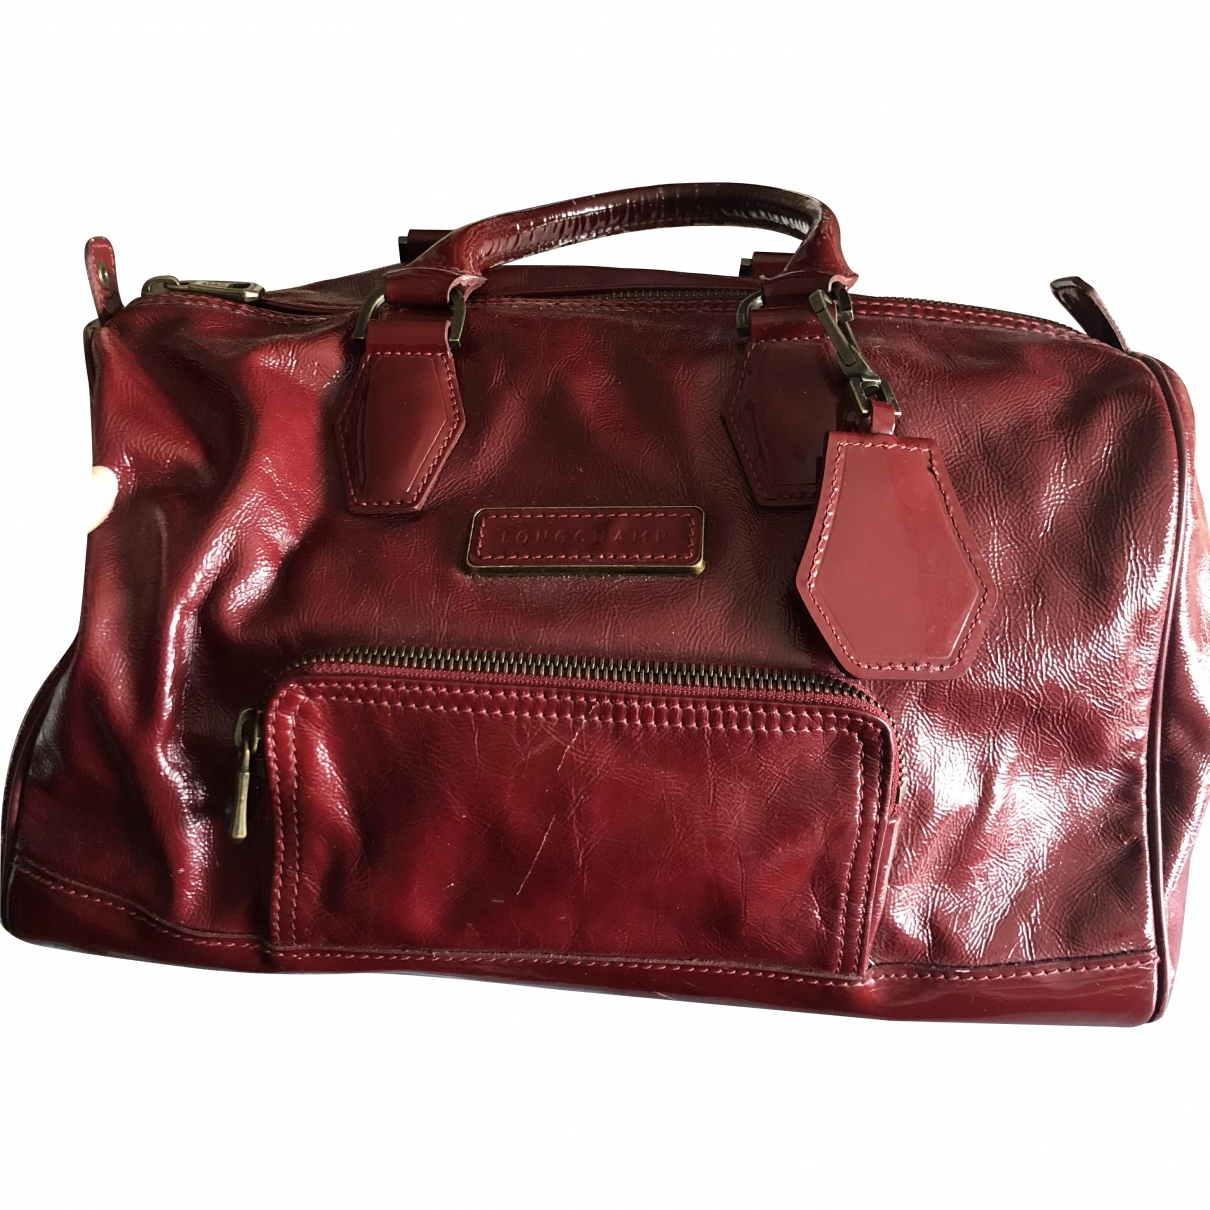 Longchamp Légende Burgundy Patent leather handbag for Women \N